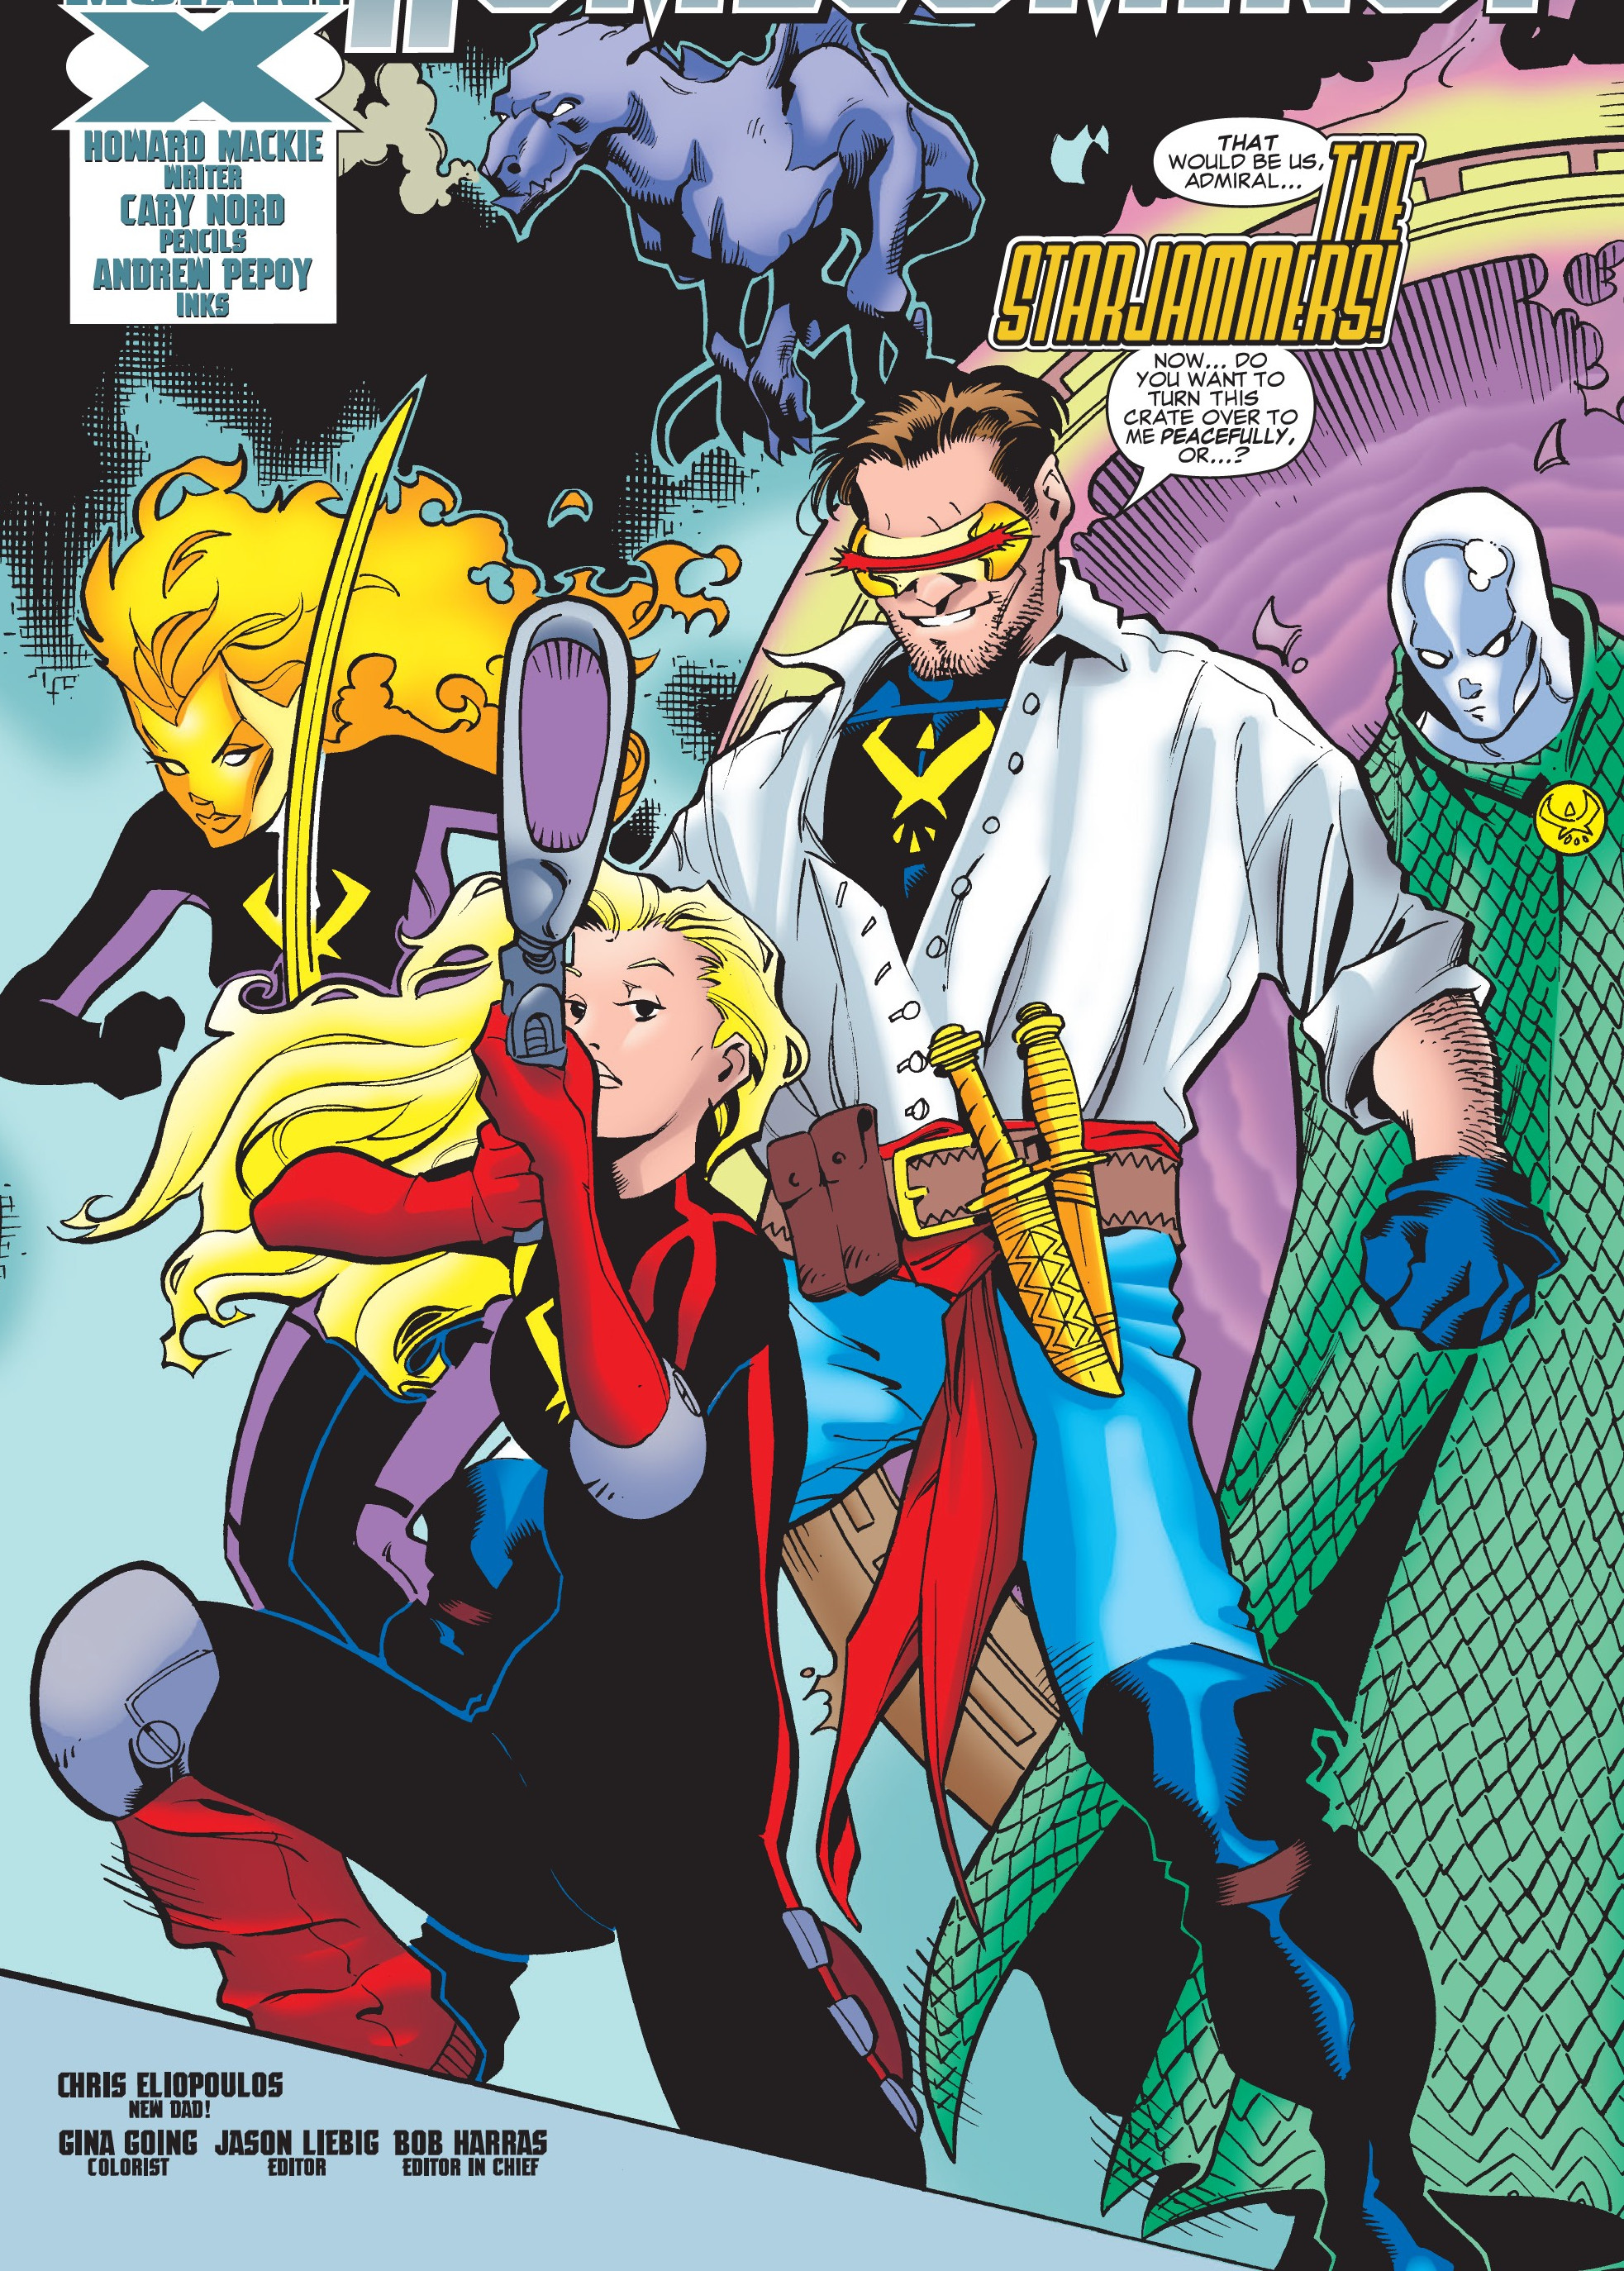 Starjammers (Earth-1298) from Mutant X Vol 1 14 0002. Starjammers (Earth- 1298) from Mutant X Vol 1 14 0002